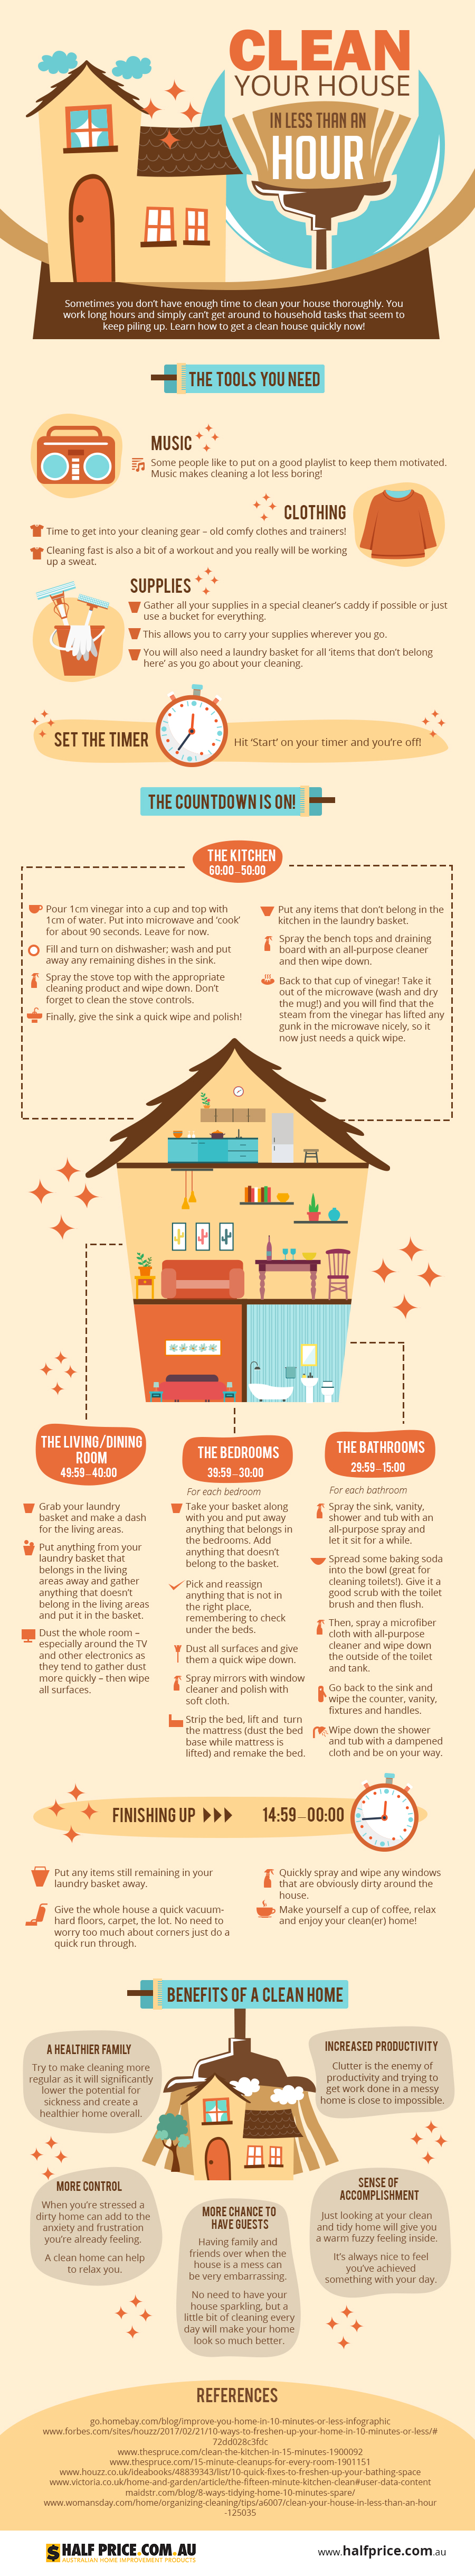 Cleaning-Your-Home-in-less-than-an-Hour.